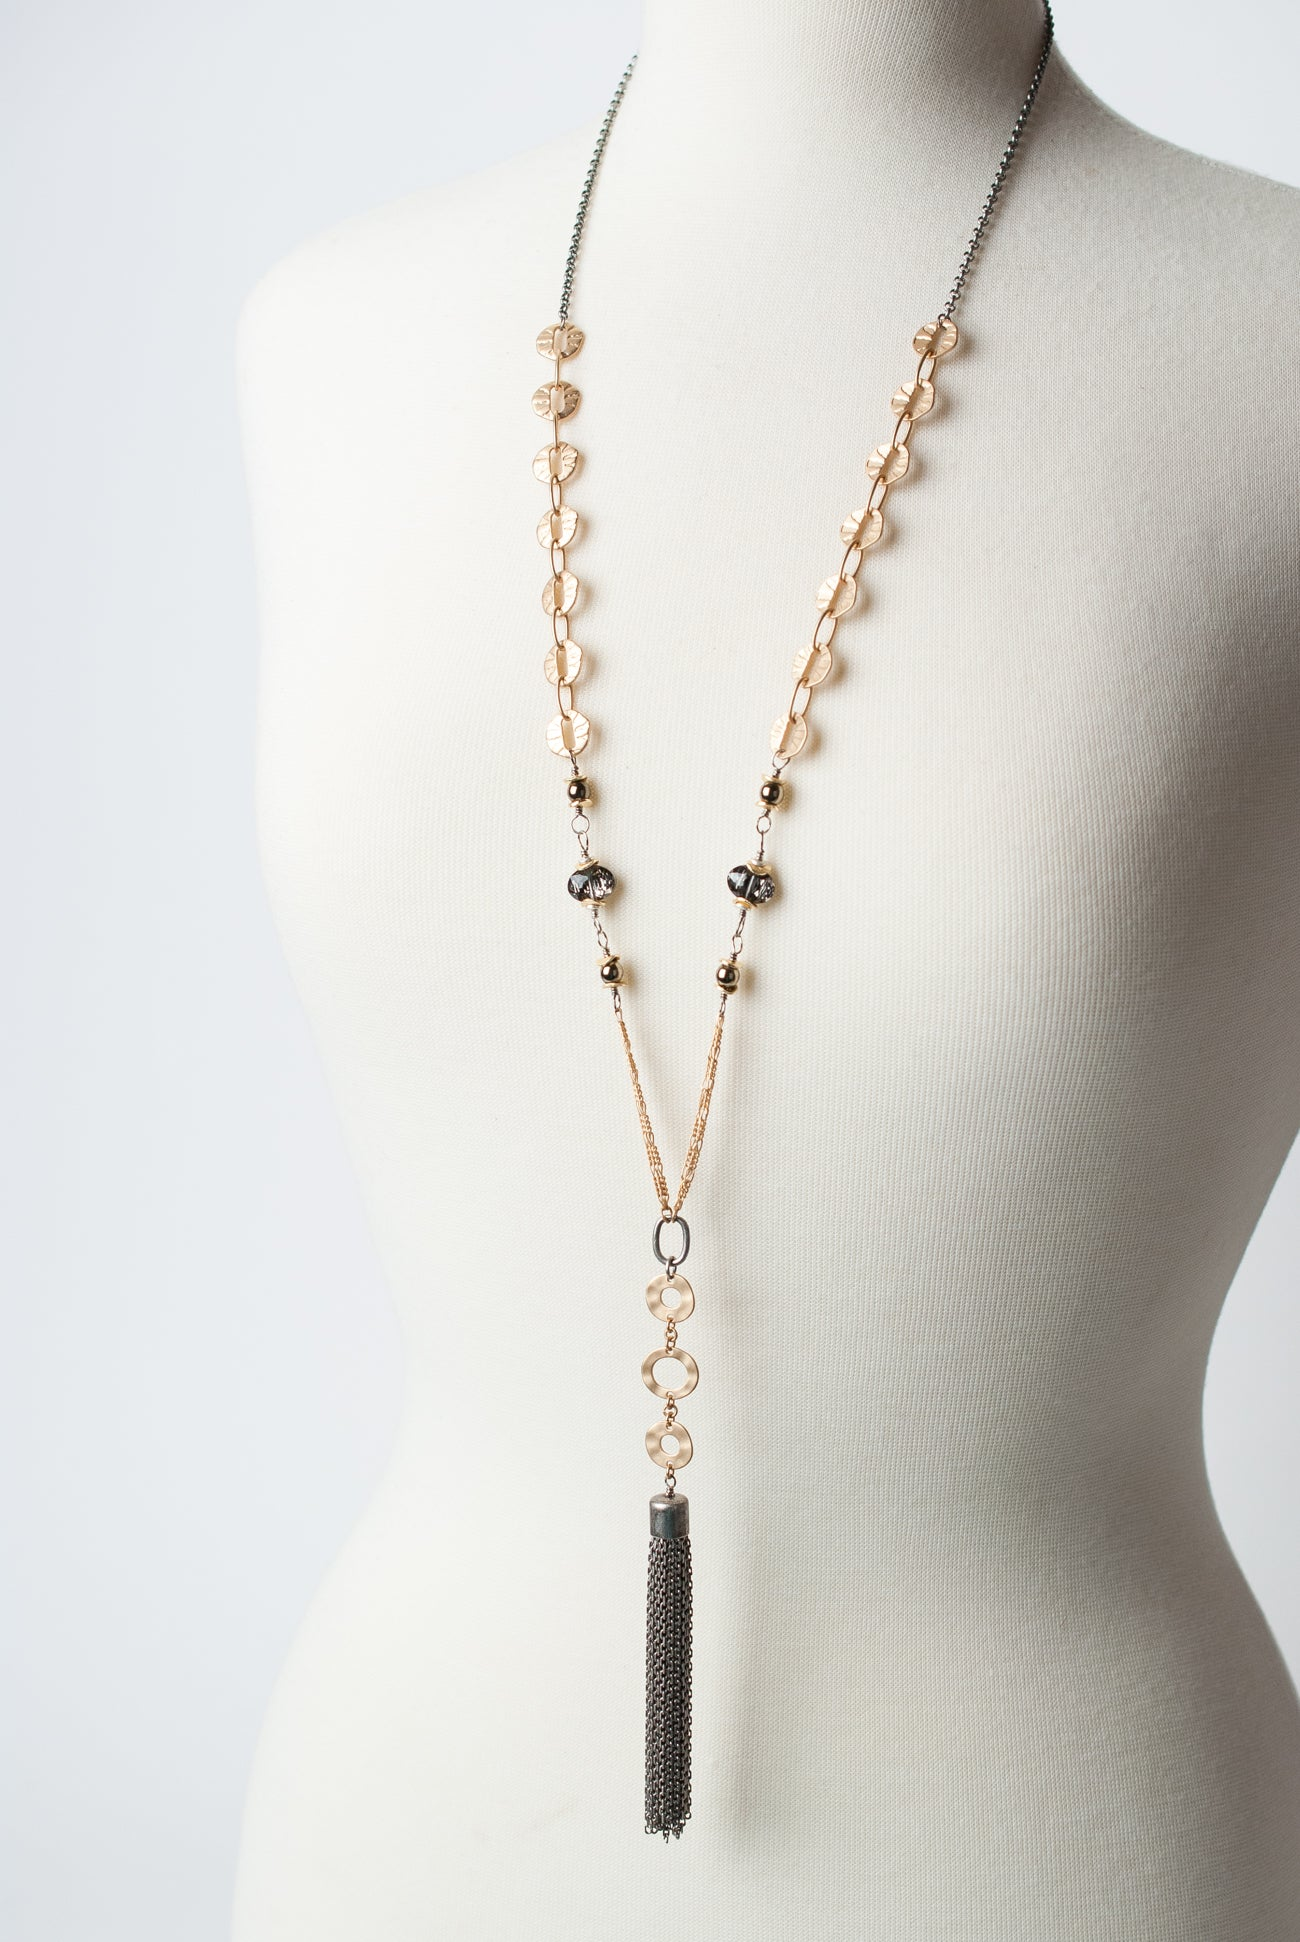 "Silver & Gold 33.5-35.5"" Silver Tassel Necklace"